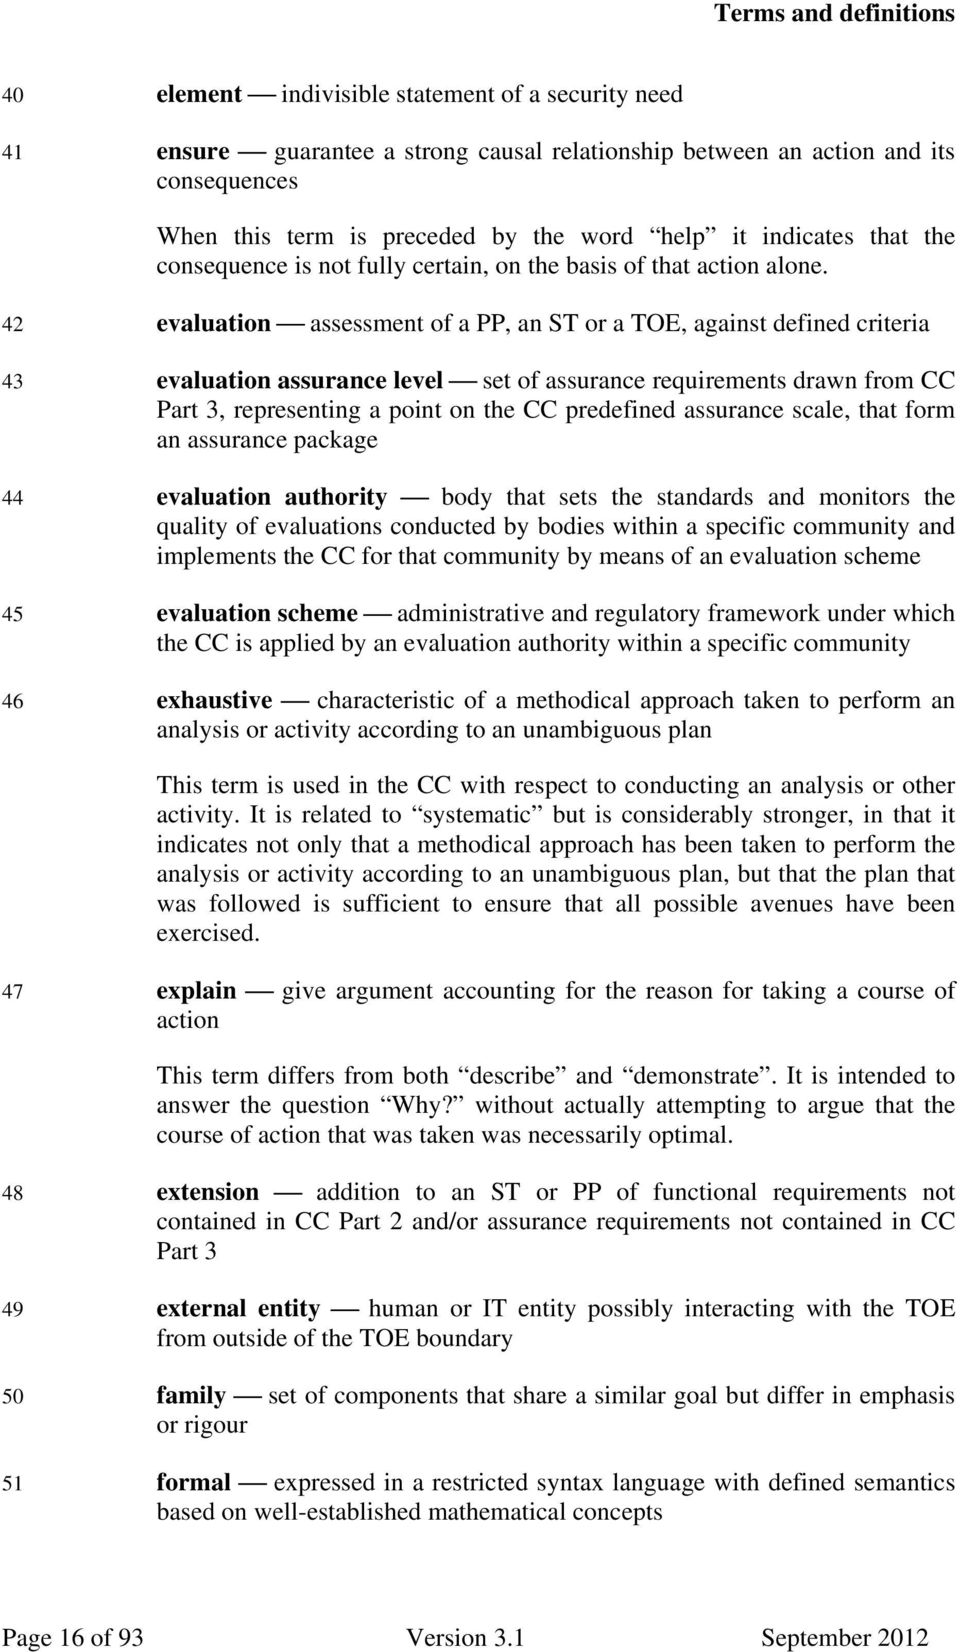 42 evaluation assessment of a PP, an ST or a TOE, against defined criteria 43 evaluation assurance level set of assurance requirements drawn from CC Part 3, representing a point on the CC predefined